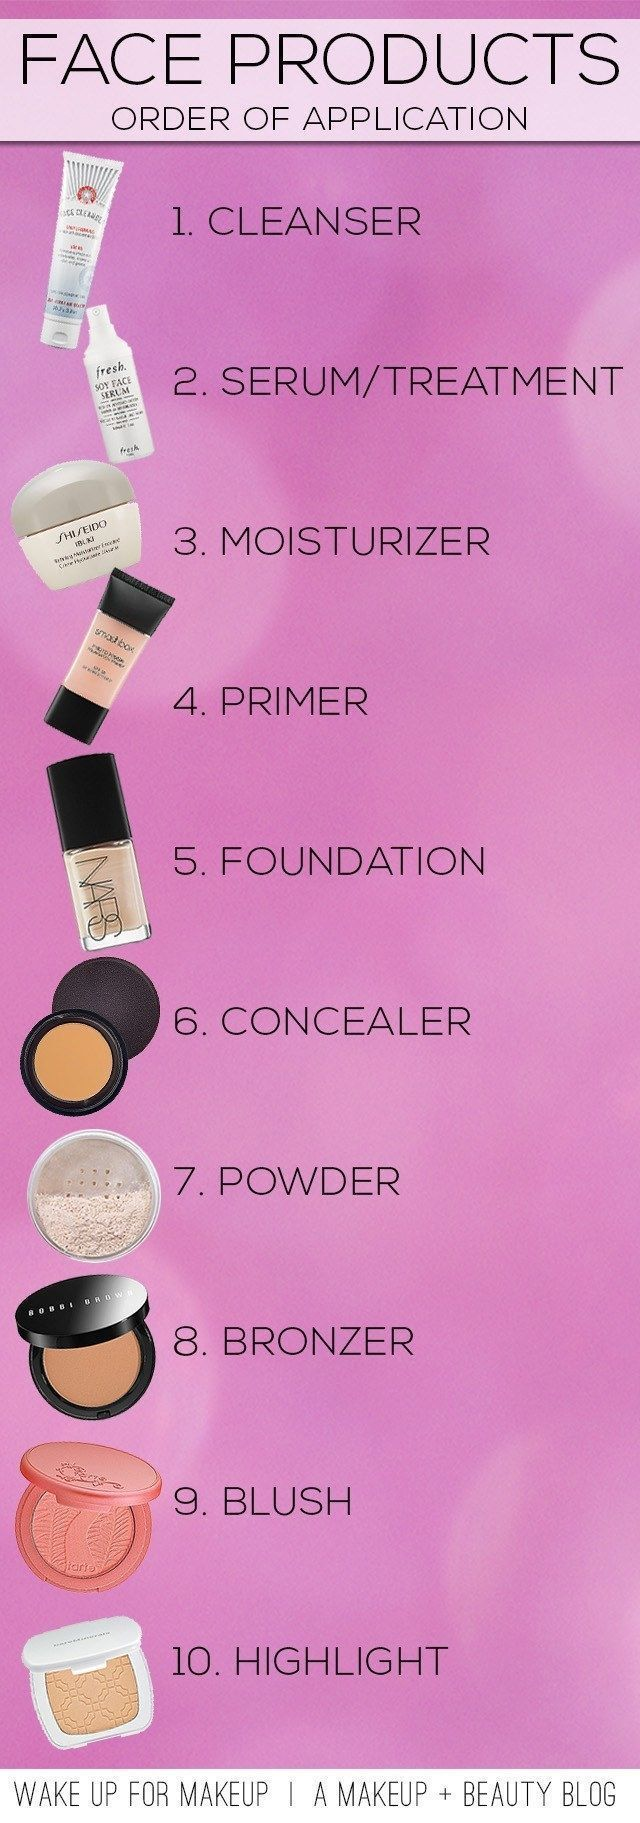 Apply skin care and makeup in the right order for a flawless finish (and less wasted product) every time. #easyeyemakeup